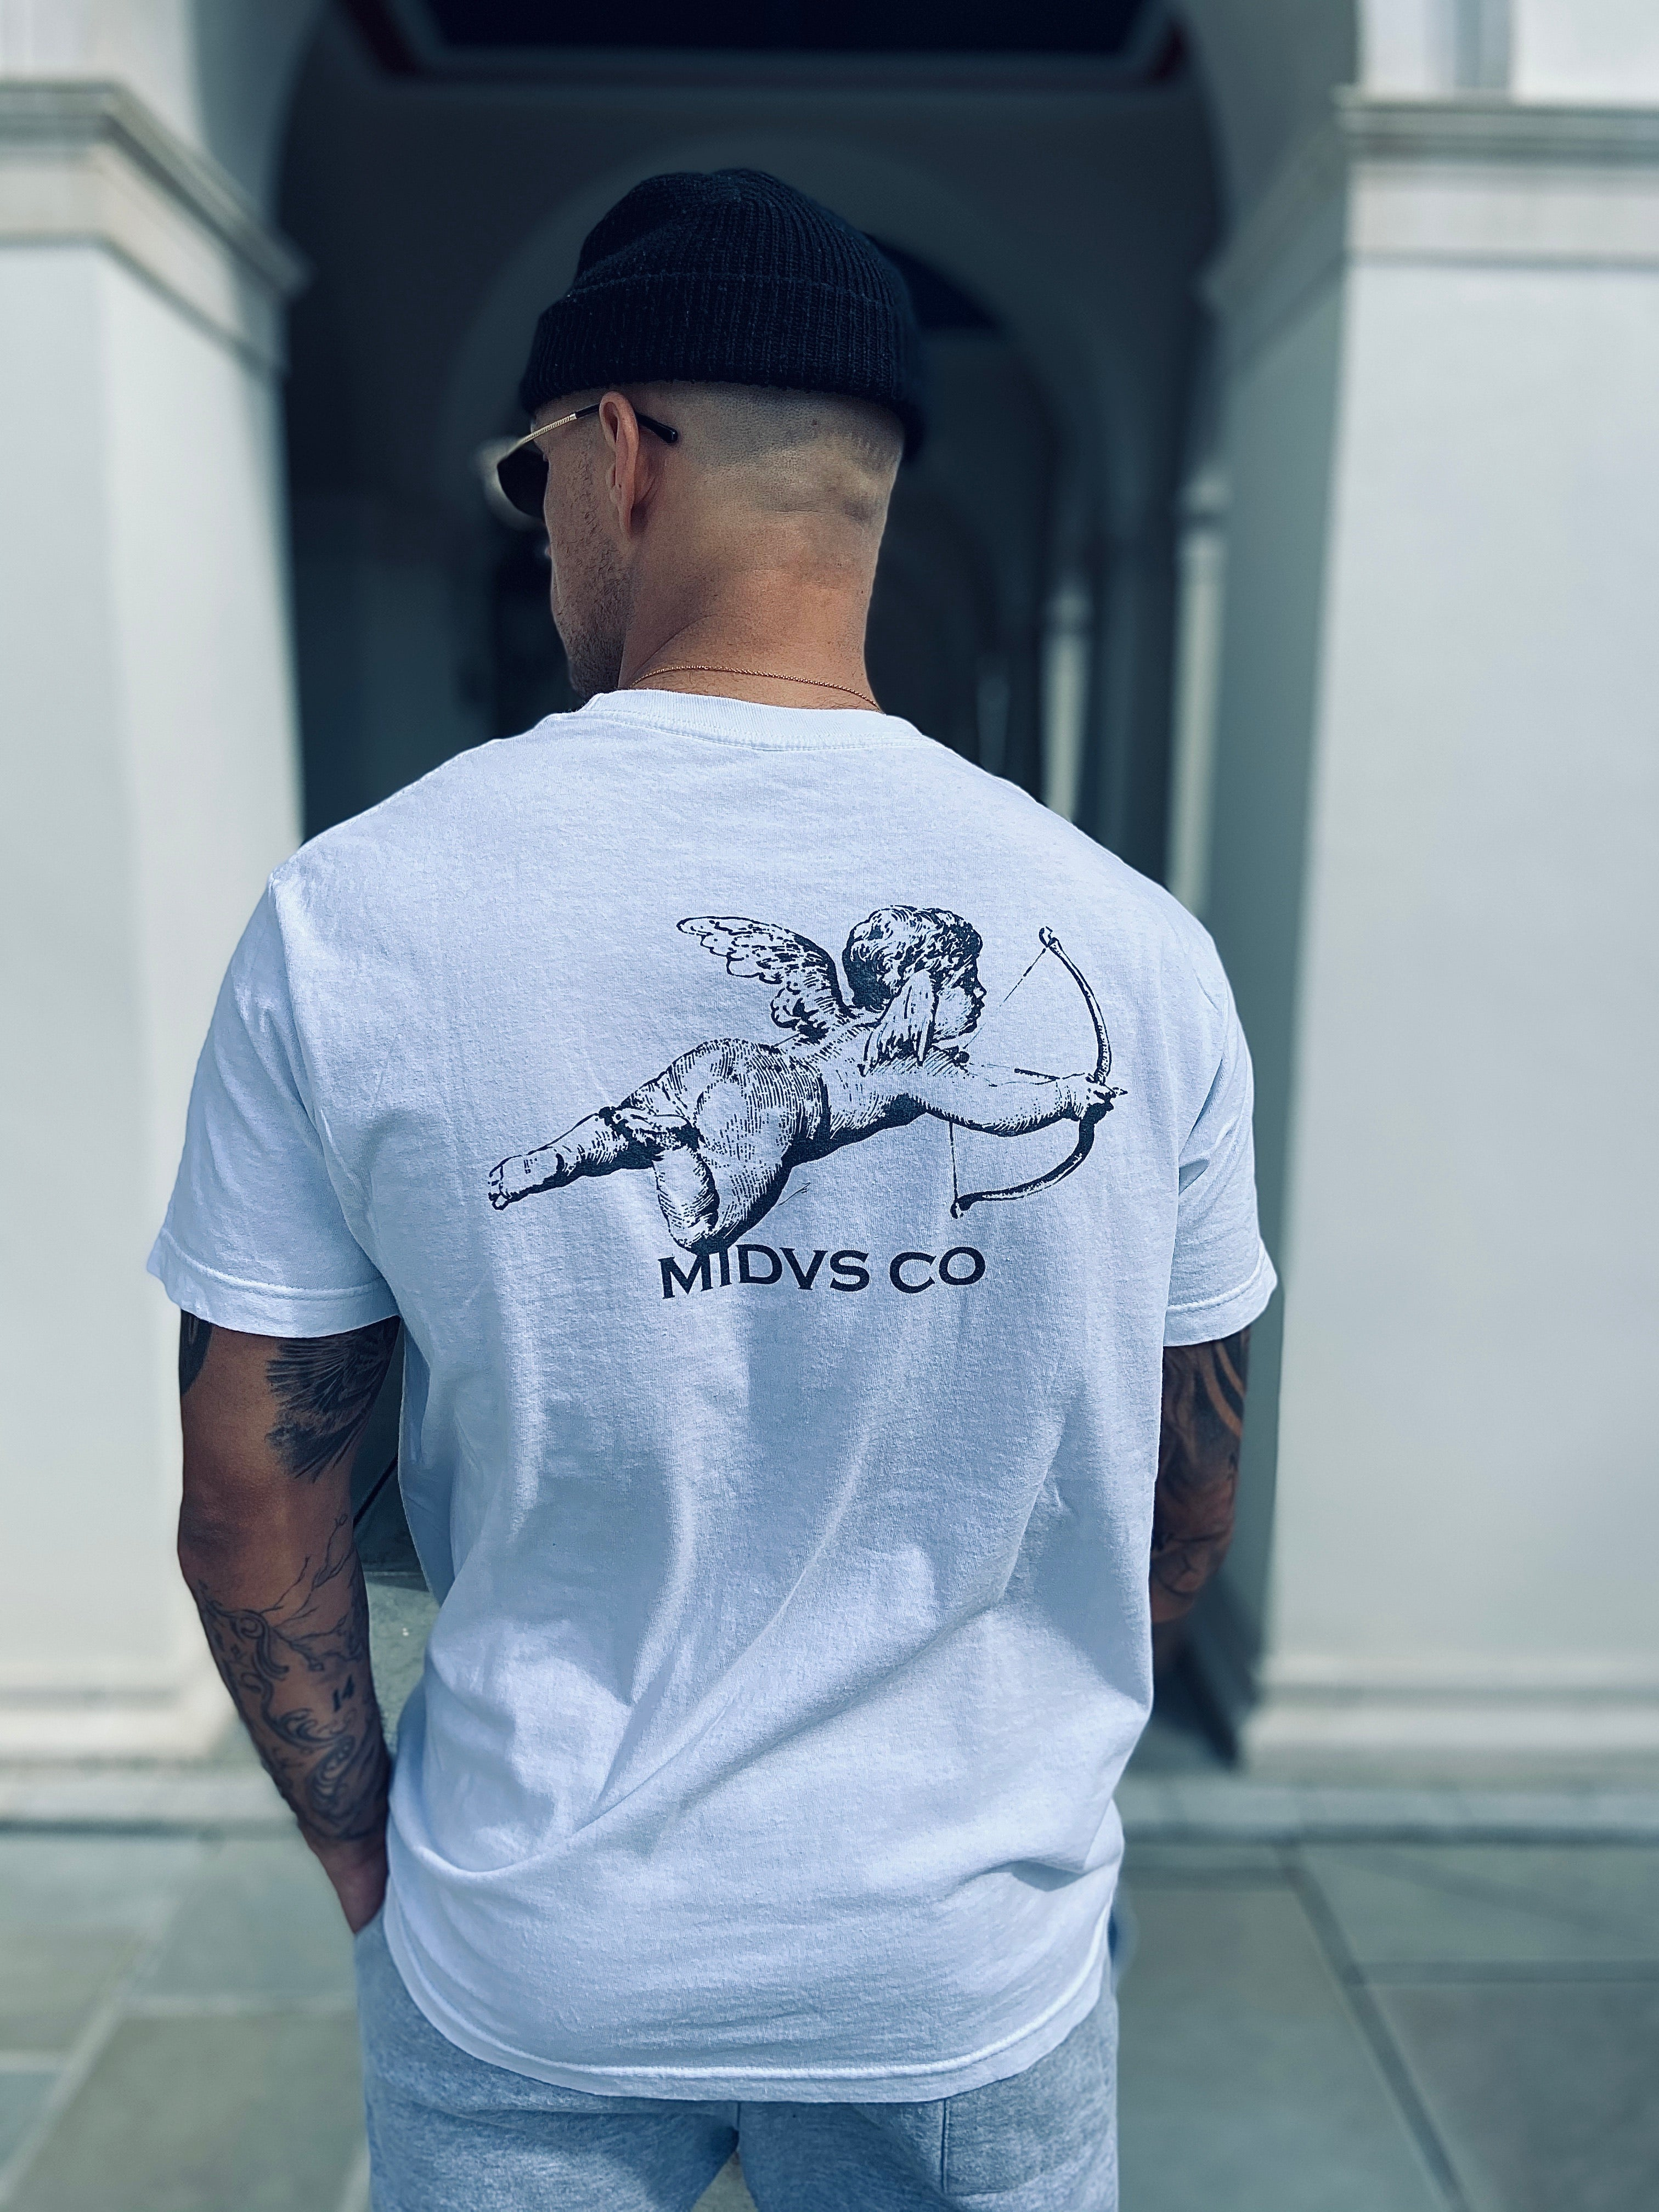 Midas Co Angels T Shirt - White